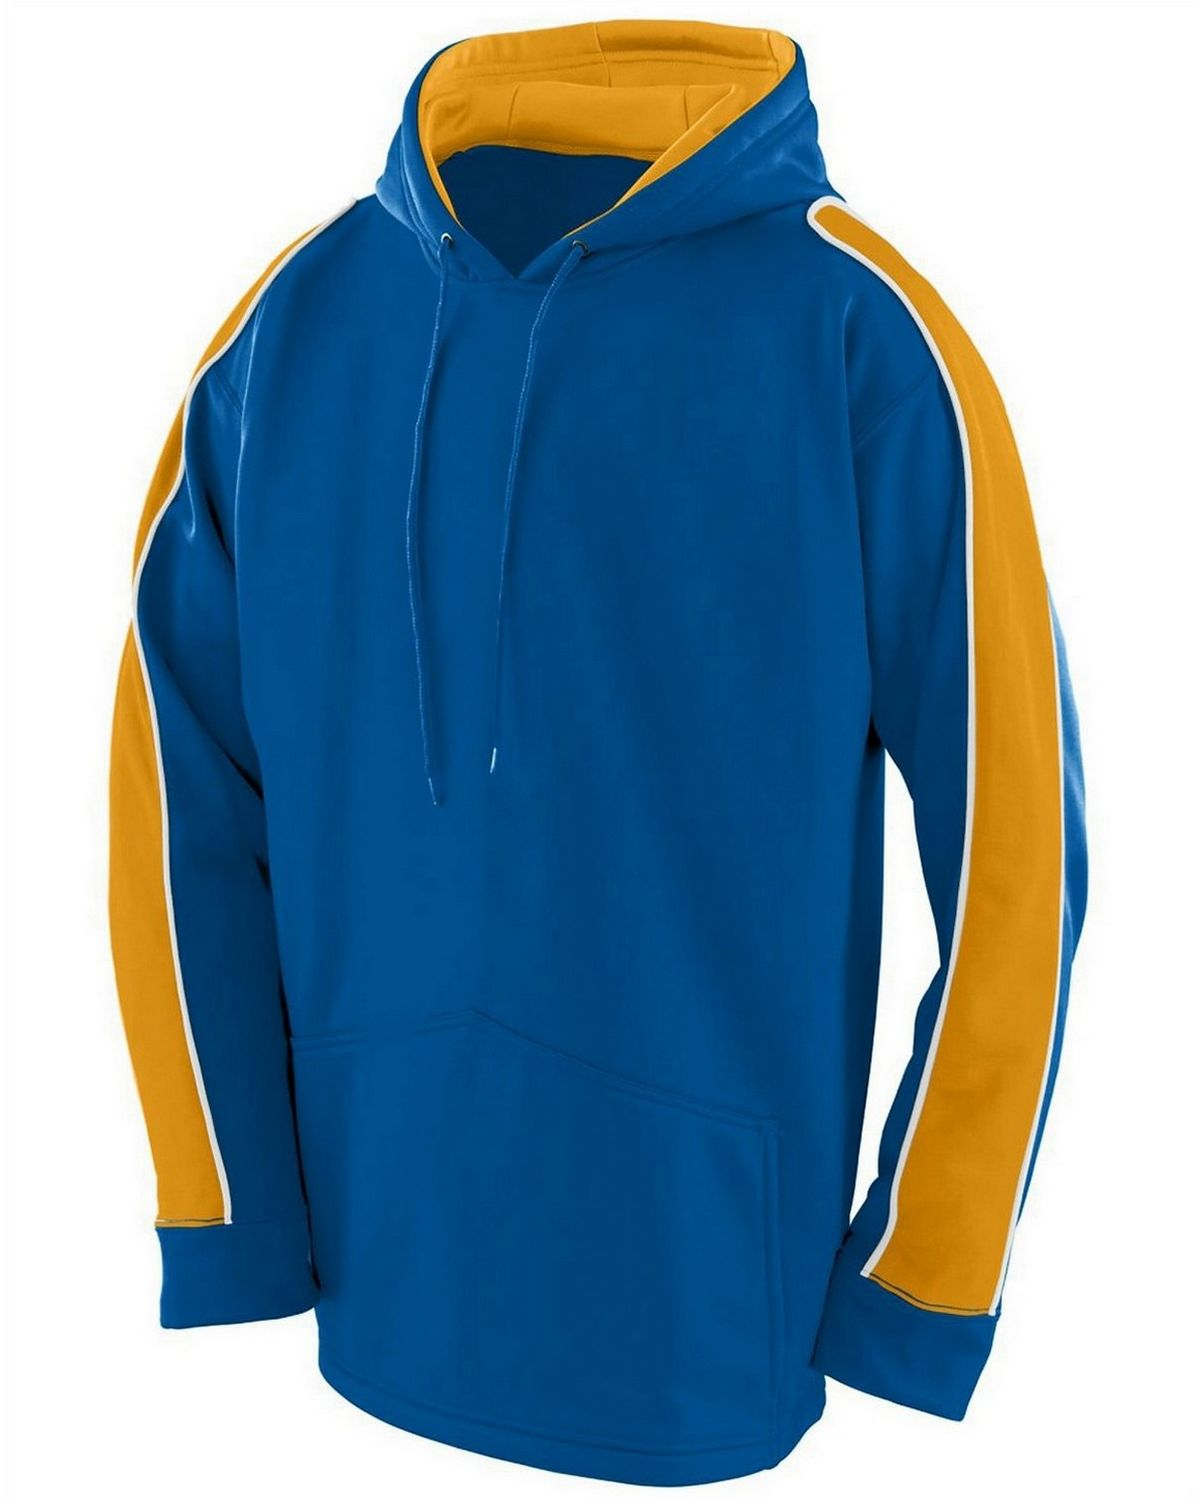 Augusta Sportswear 5523 Hoody - Royal/Gold/White - L 5523